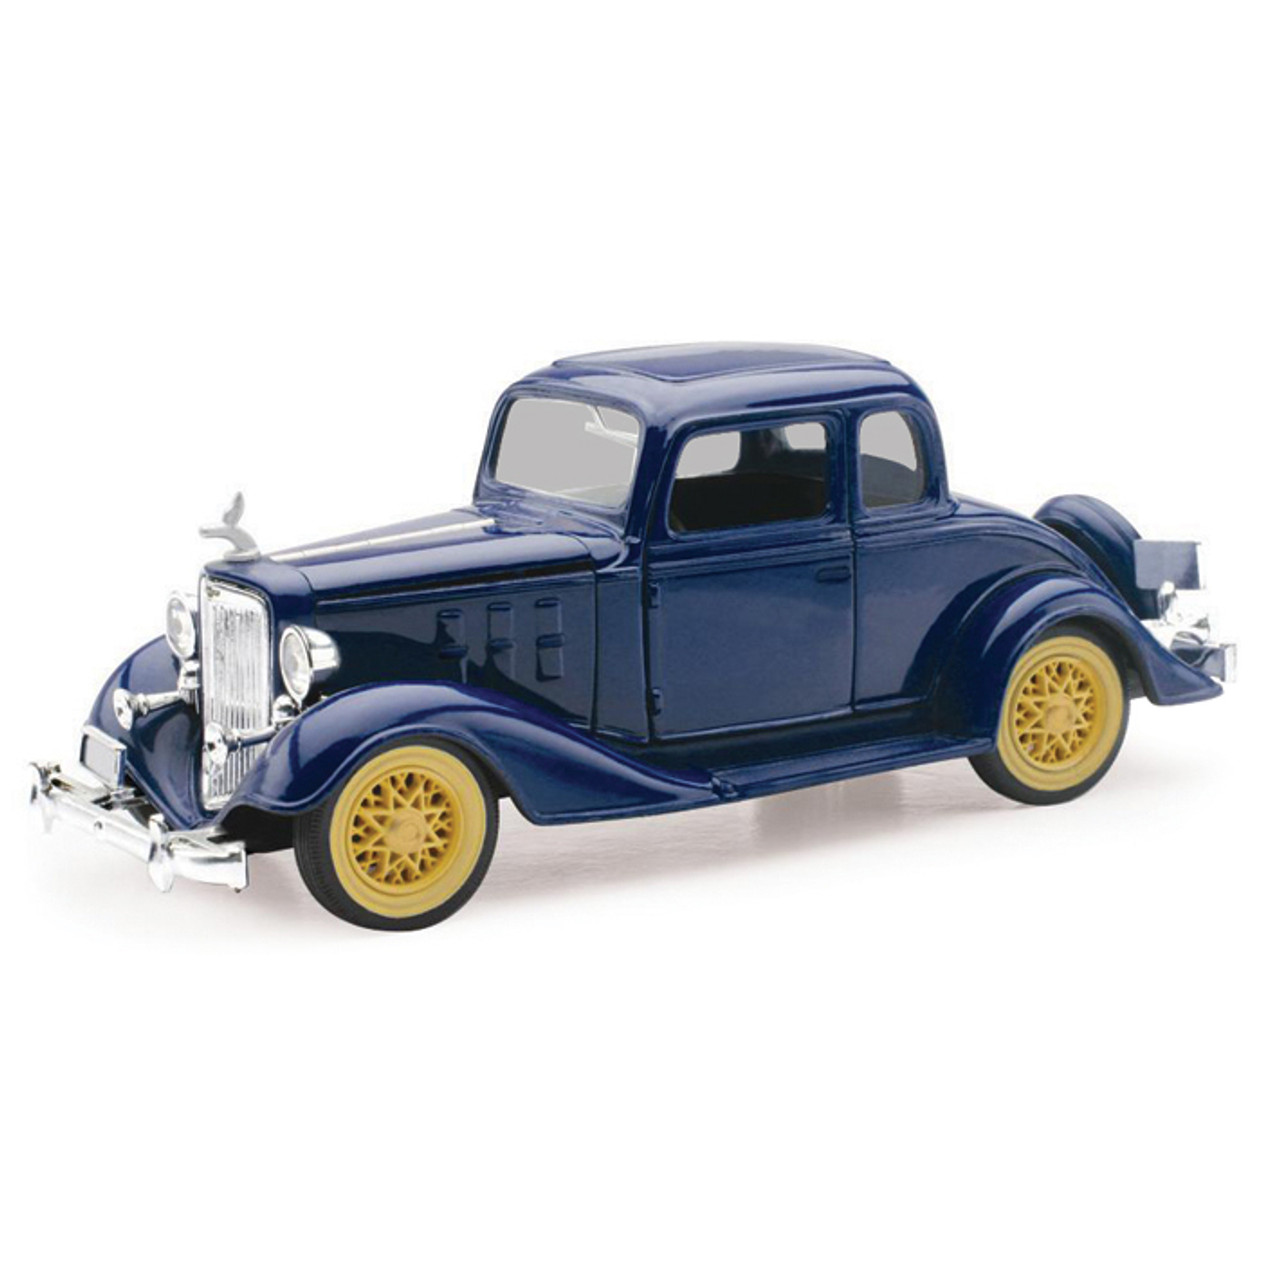 hight resolution of 1933 chevrolet eagle coupe main image